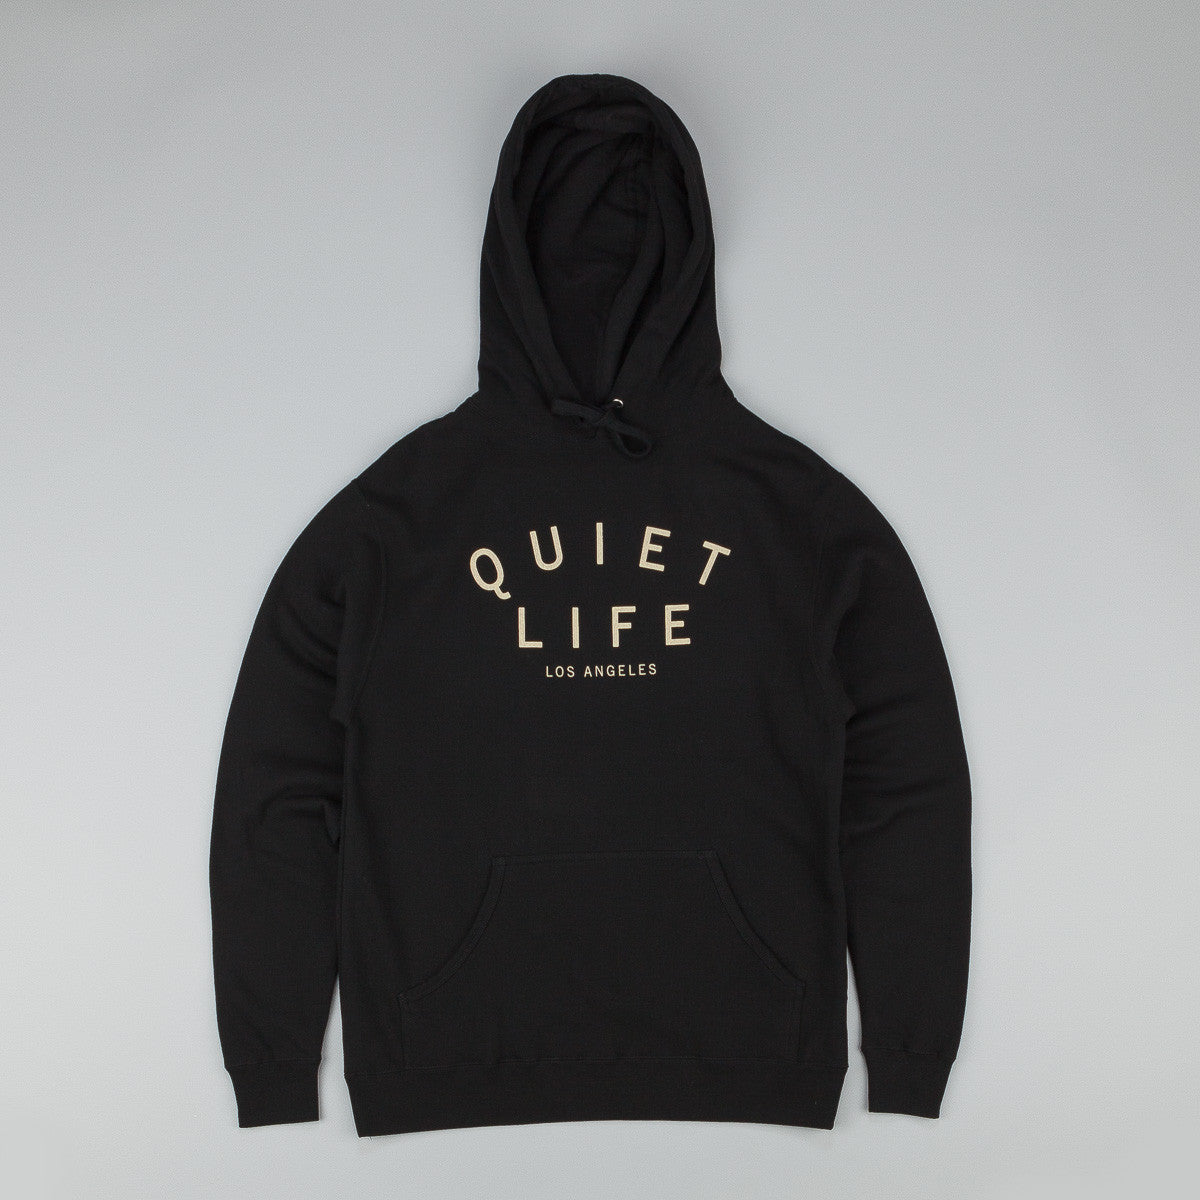 The Quiet Life Standard Hooded Sweatshirt